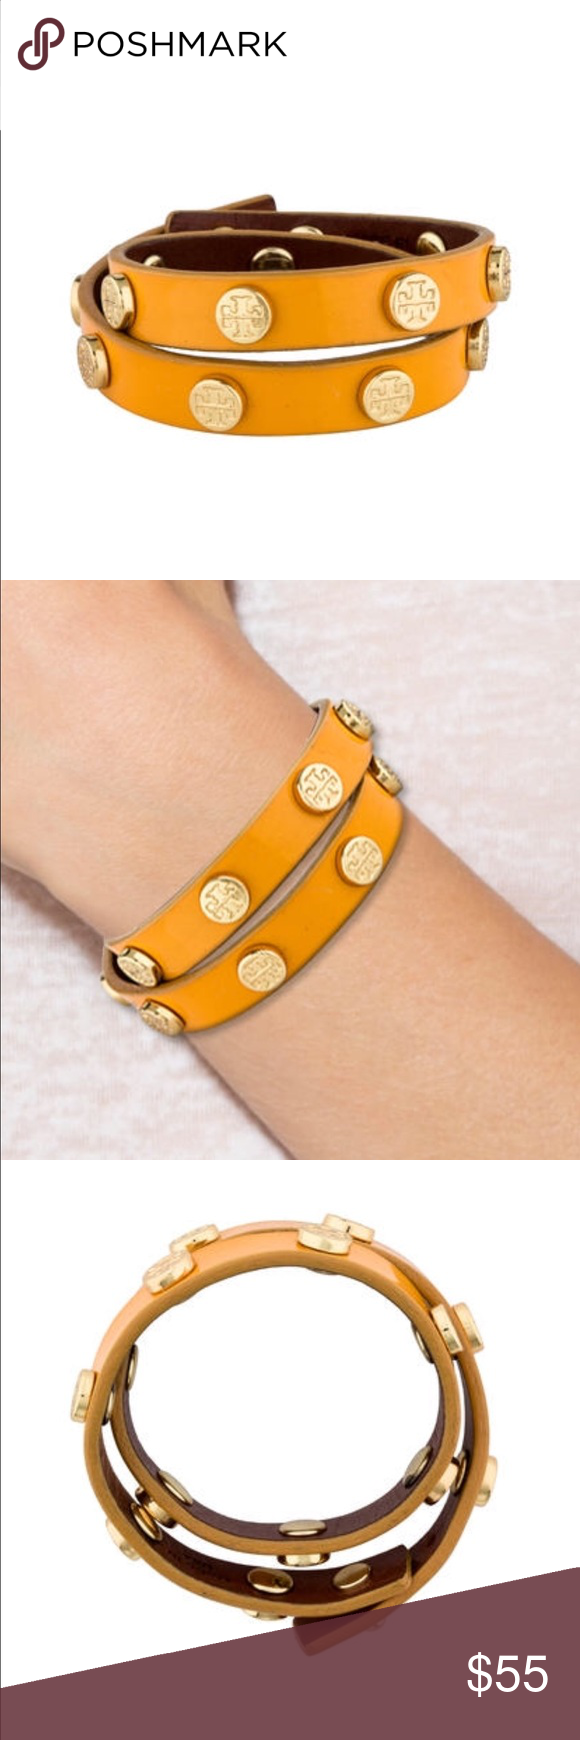 """TORY BURCH DOUBLE WRAP LOGO BRACELET Yellow patent leather Tory Burch double wrap bracelet with gold-tone logo stations. Metal Type: Gold-Toned Metal Metal Finish: High Polish Condition: Very Good. Faint scuffs at exterior. Measurements: Length 14.25""""-15"""", Width 0.75"""" Tory Burch Jewelry Bracelets"""